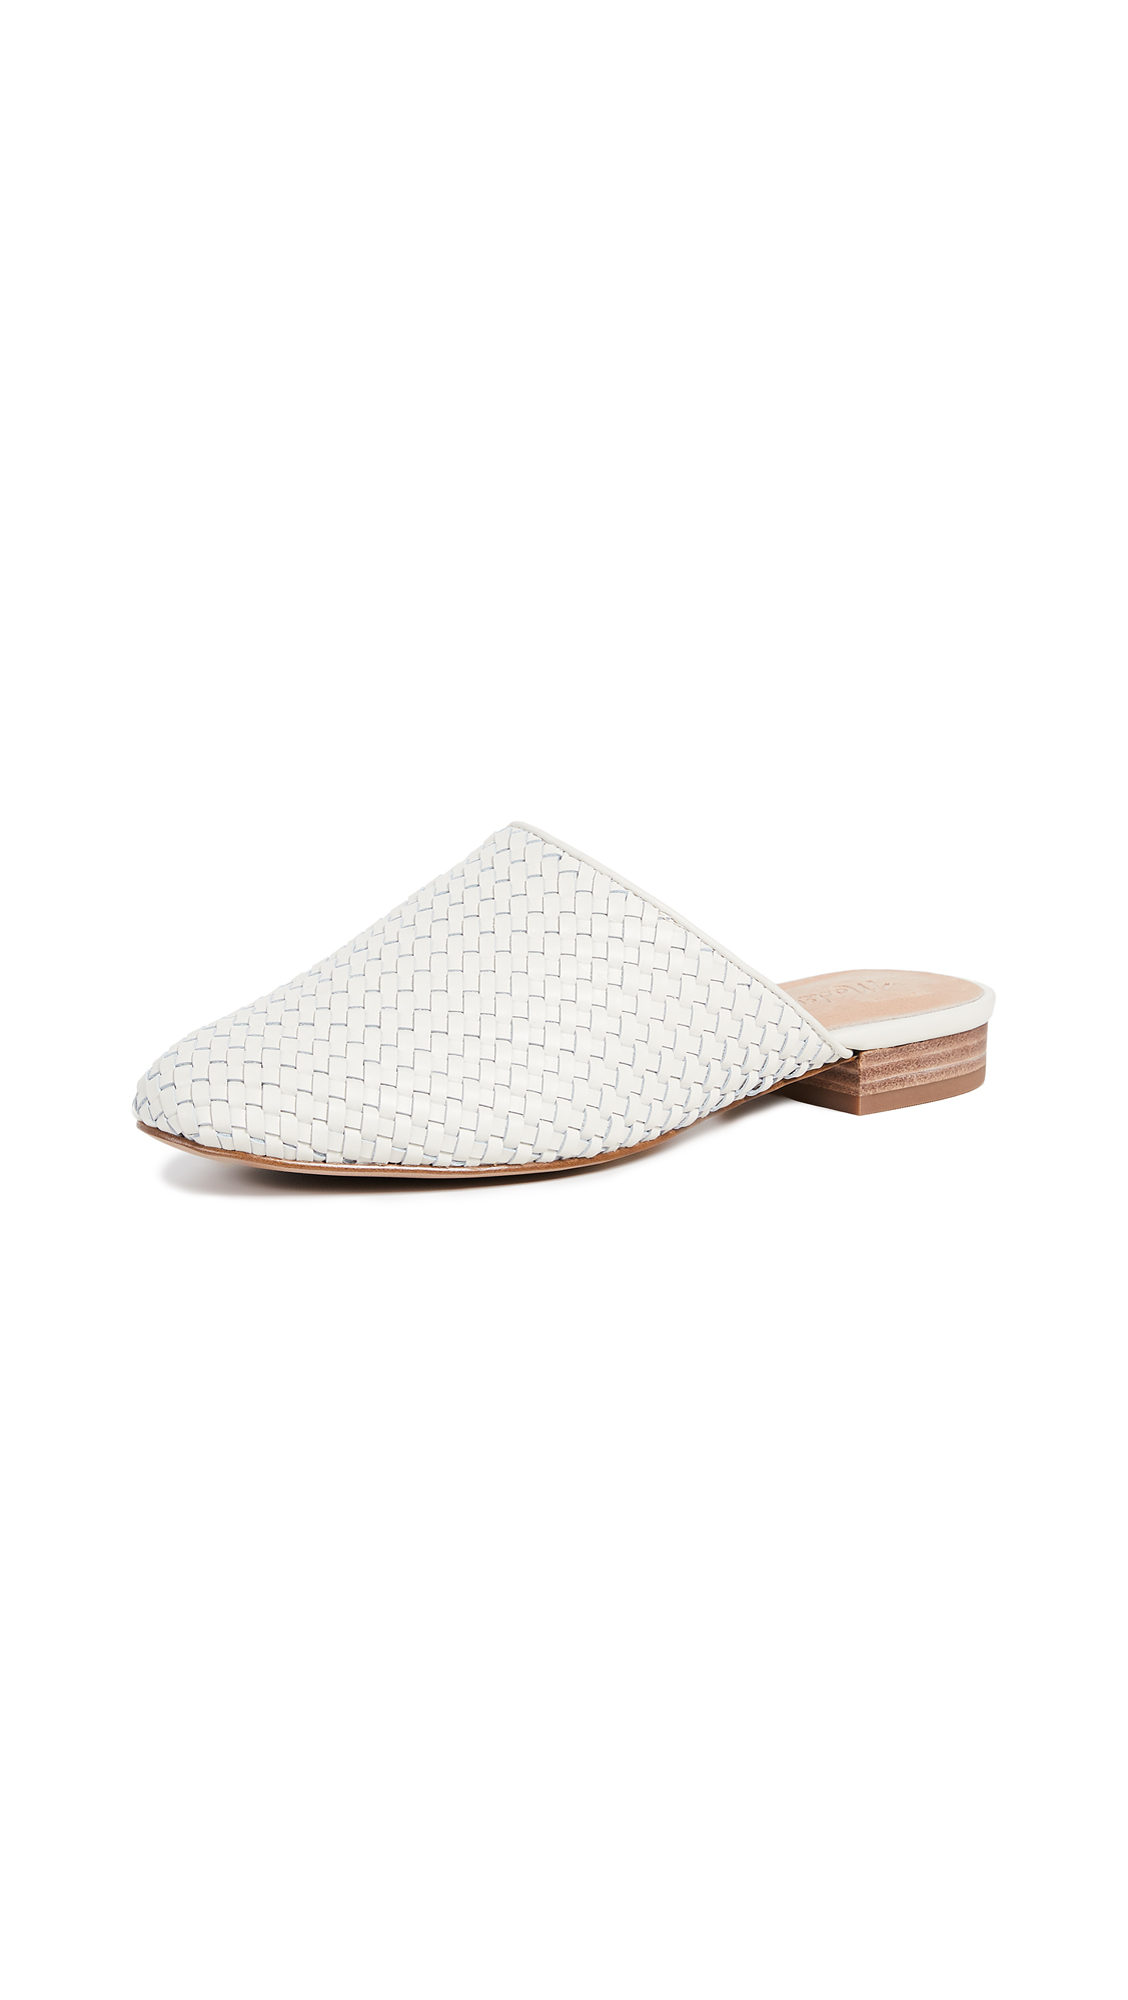 Madewell The Cassidy Woven Mules - Vintage Canvas